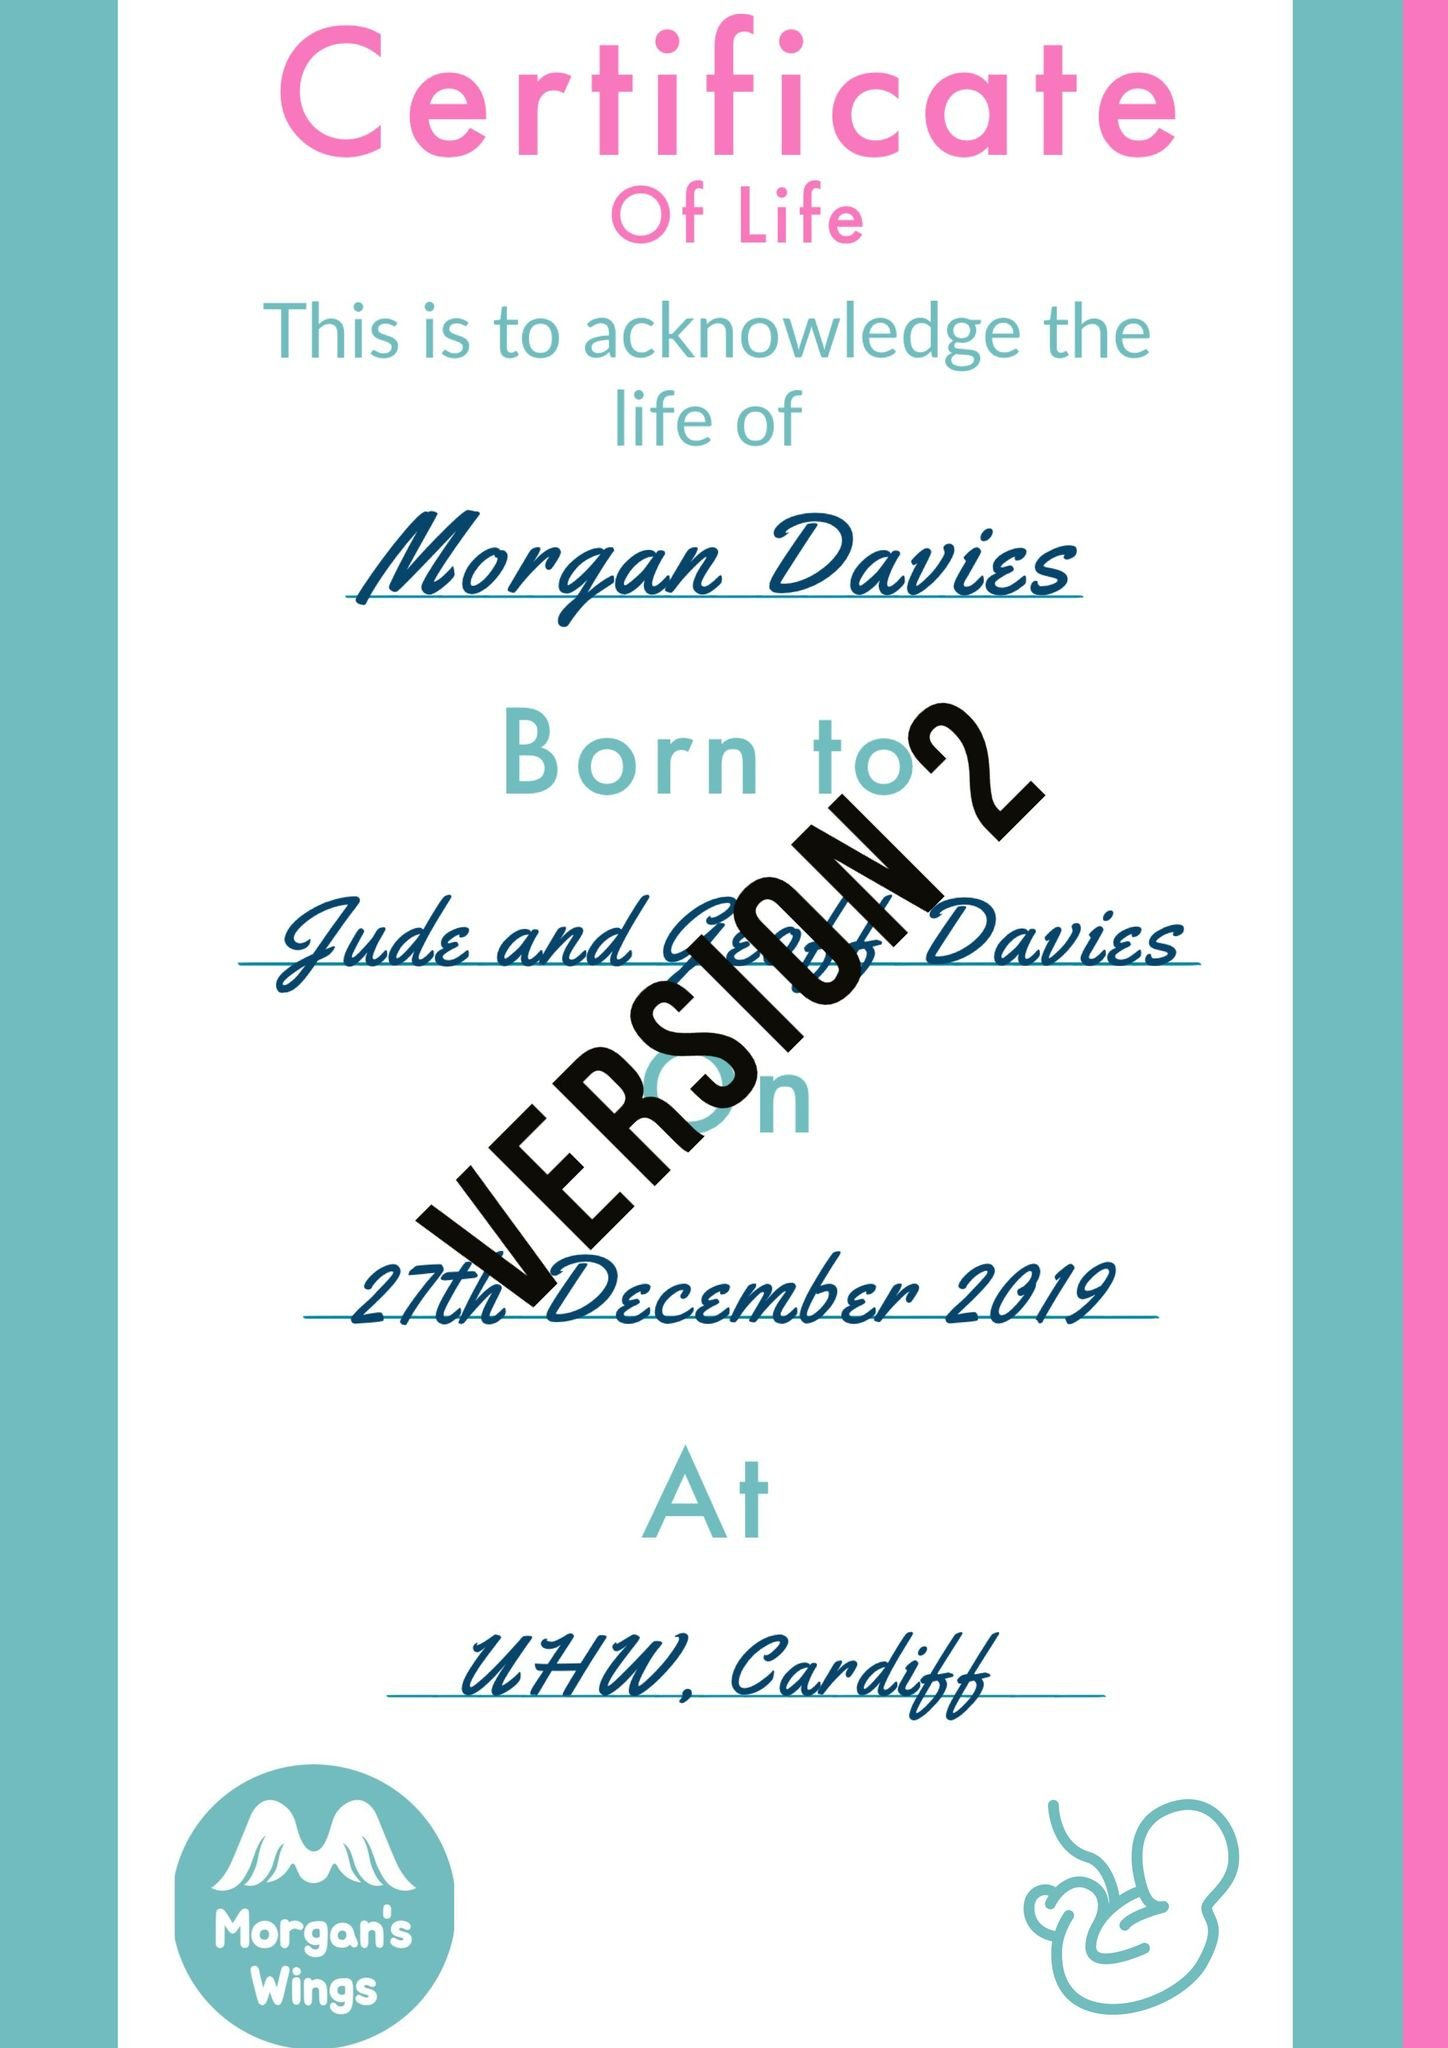 Certificate version 2